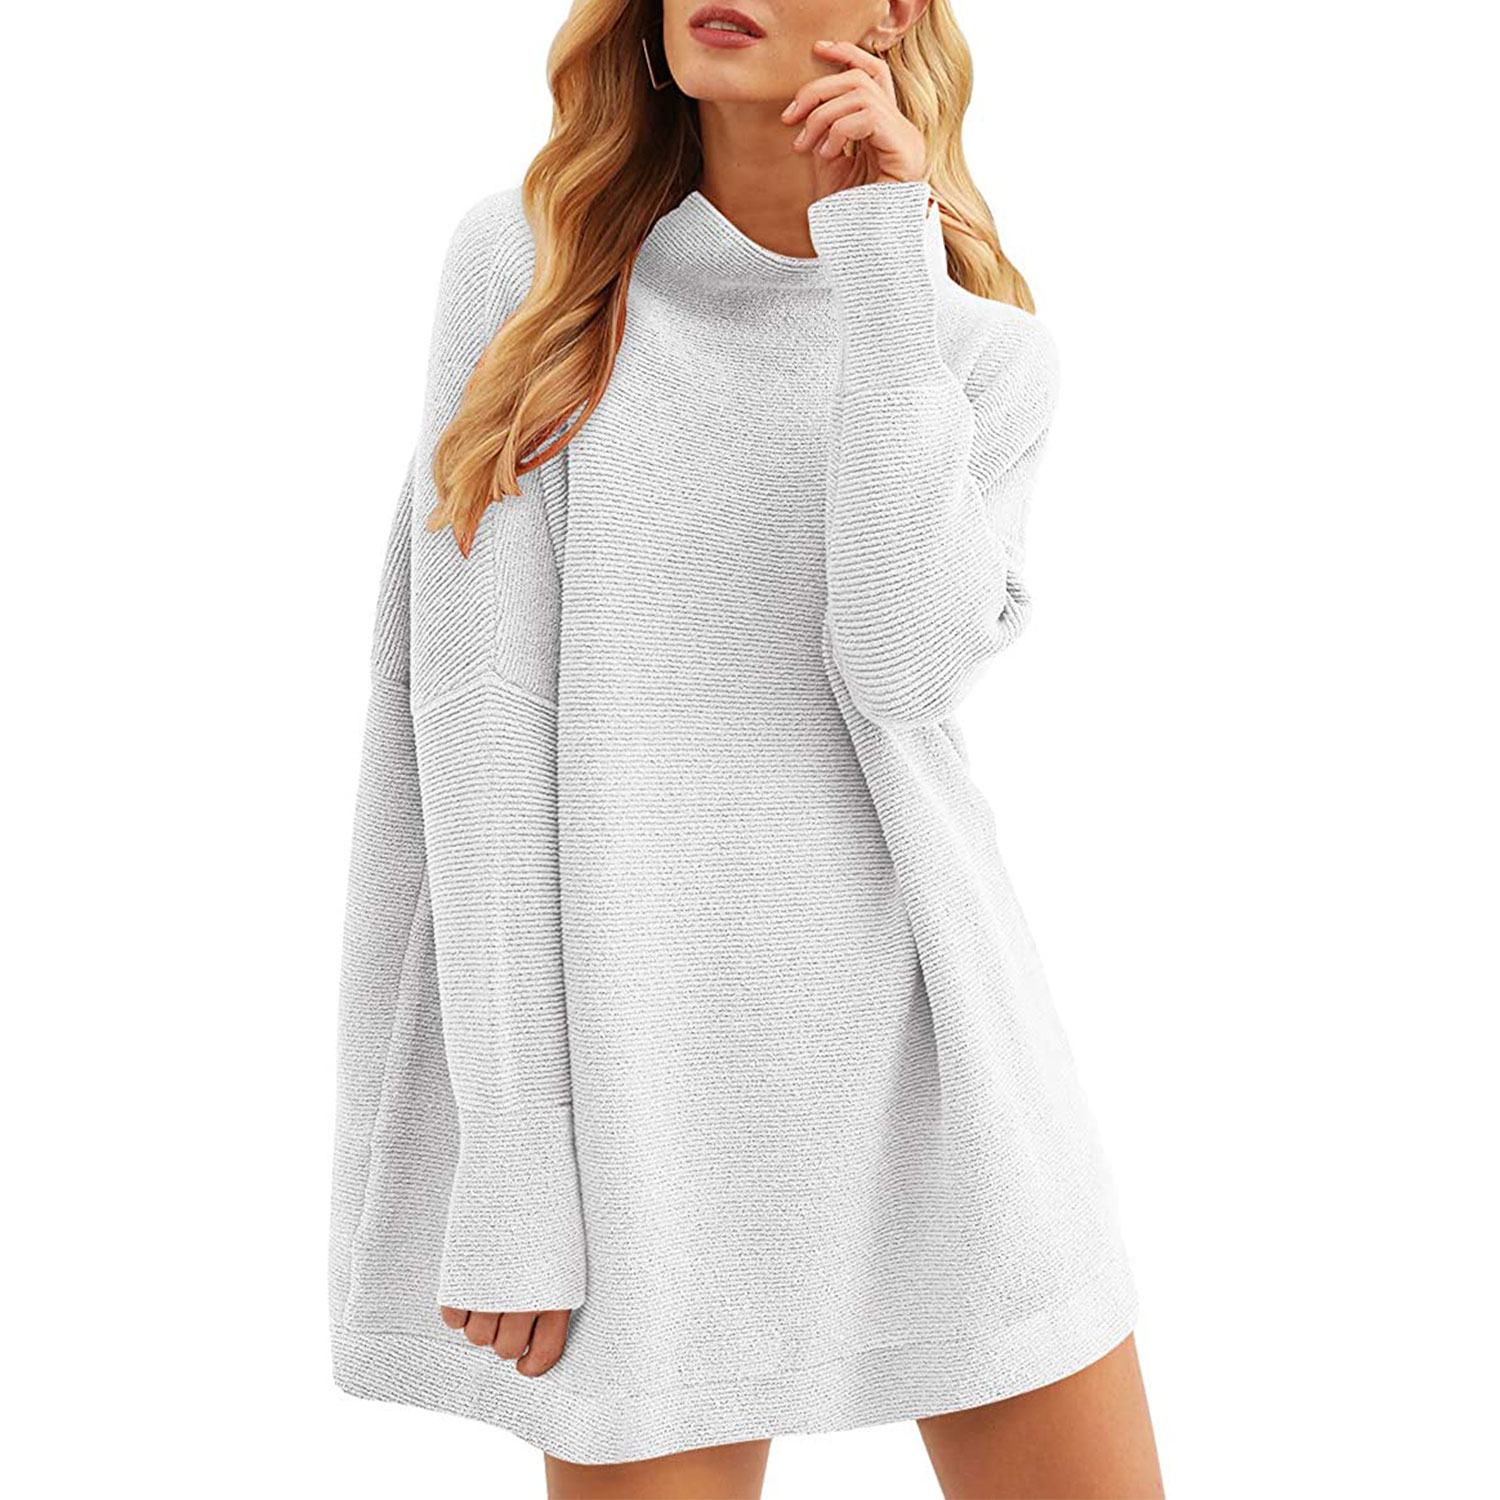 women's casual turtleneck batwing sleeve slouchy oversized ribbed knit tunic sweaters, gray